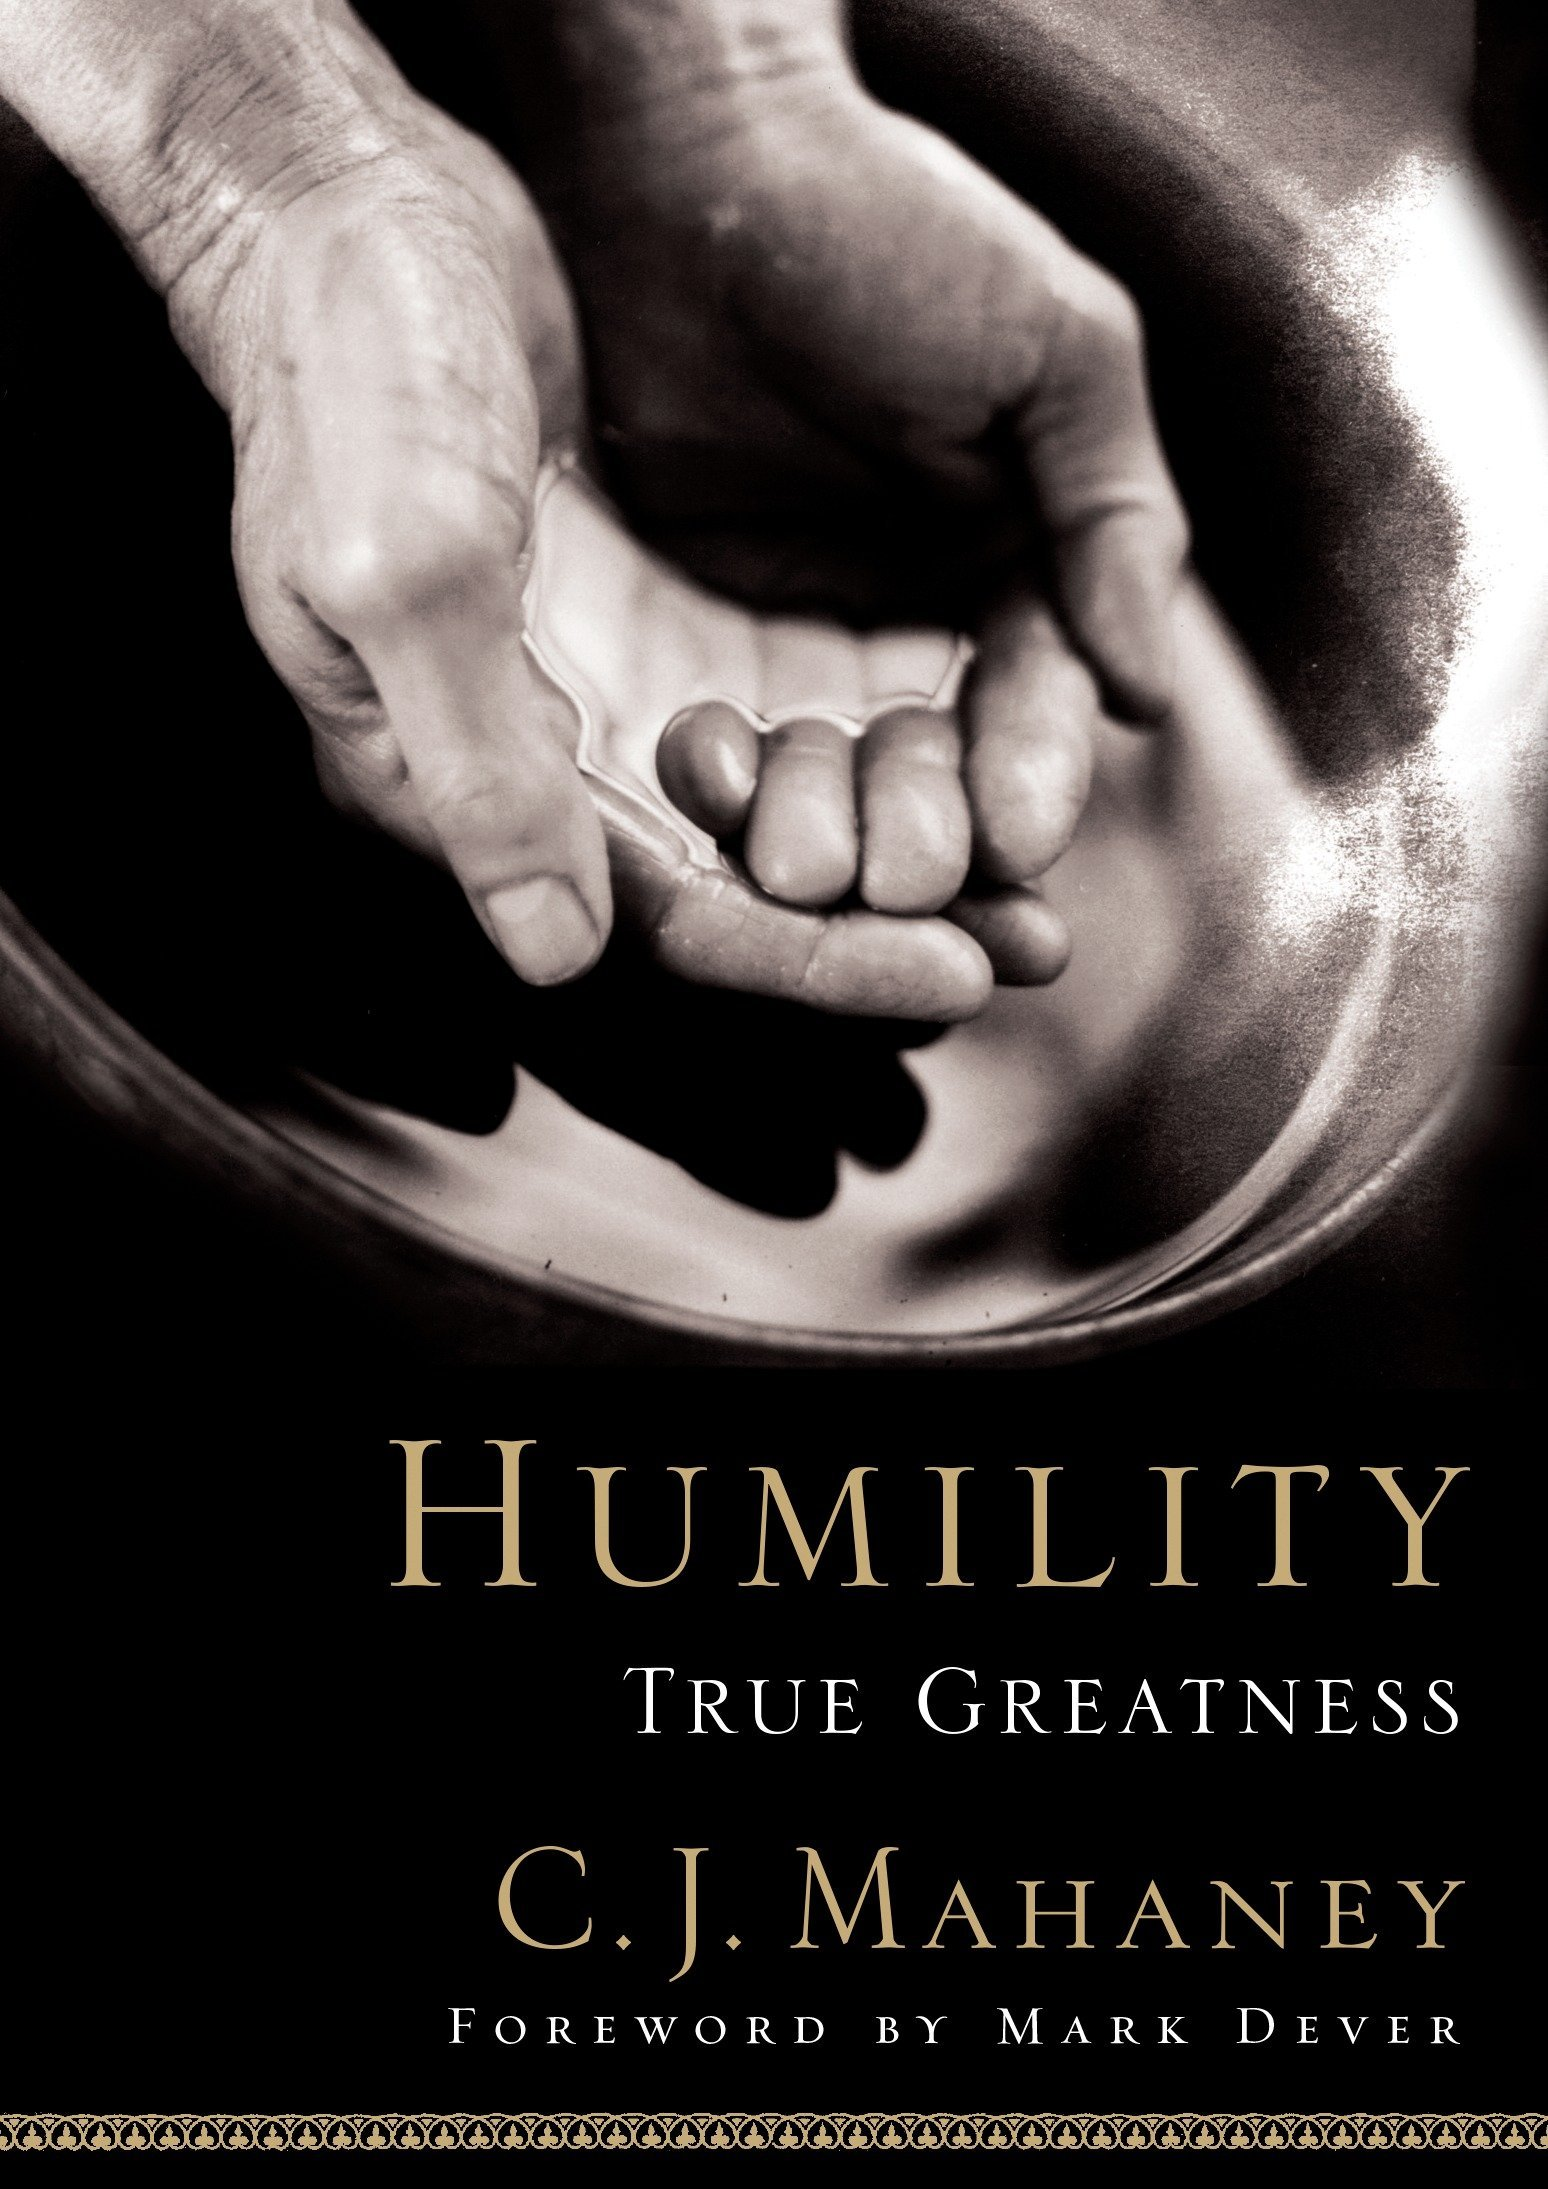 Humility True Greatness C J Mahaney Mark Dever 9781590523261 Amazon Com Books